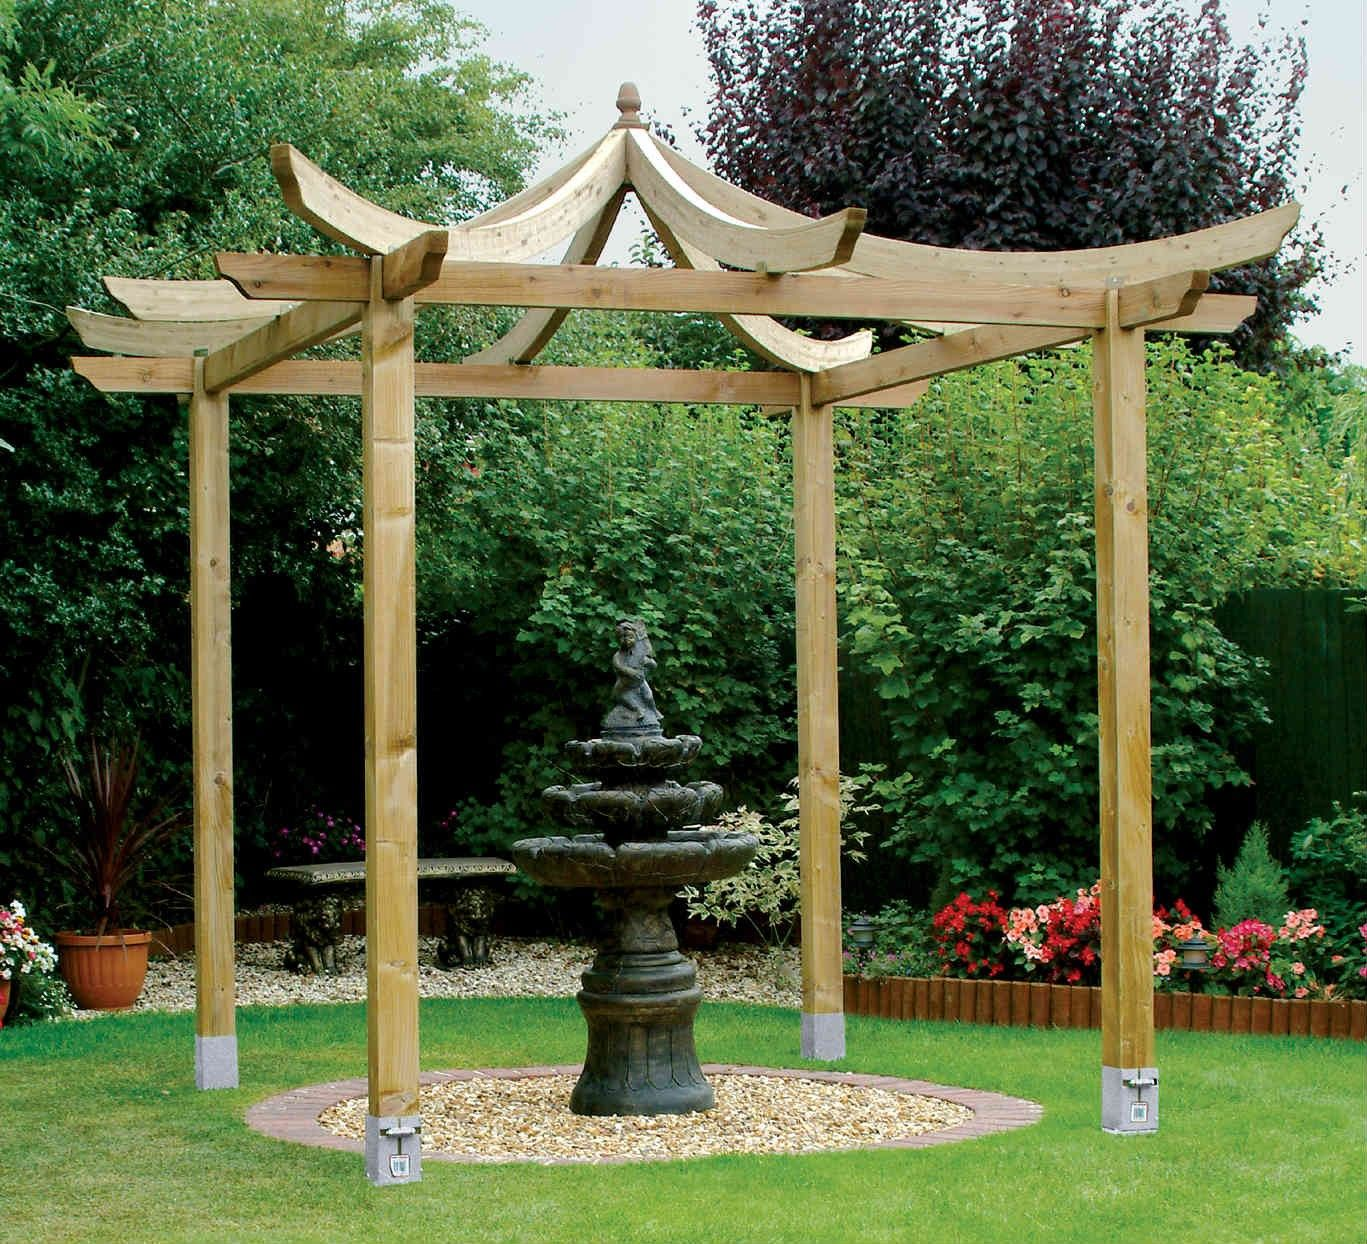 Be inspired by The Japanese Pergola Kit from Grange and create a bold and  fabulous statement - Pin By David Arthur Desenberg On Pergolas Pergola, Garden, Garden